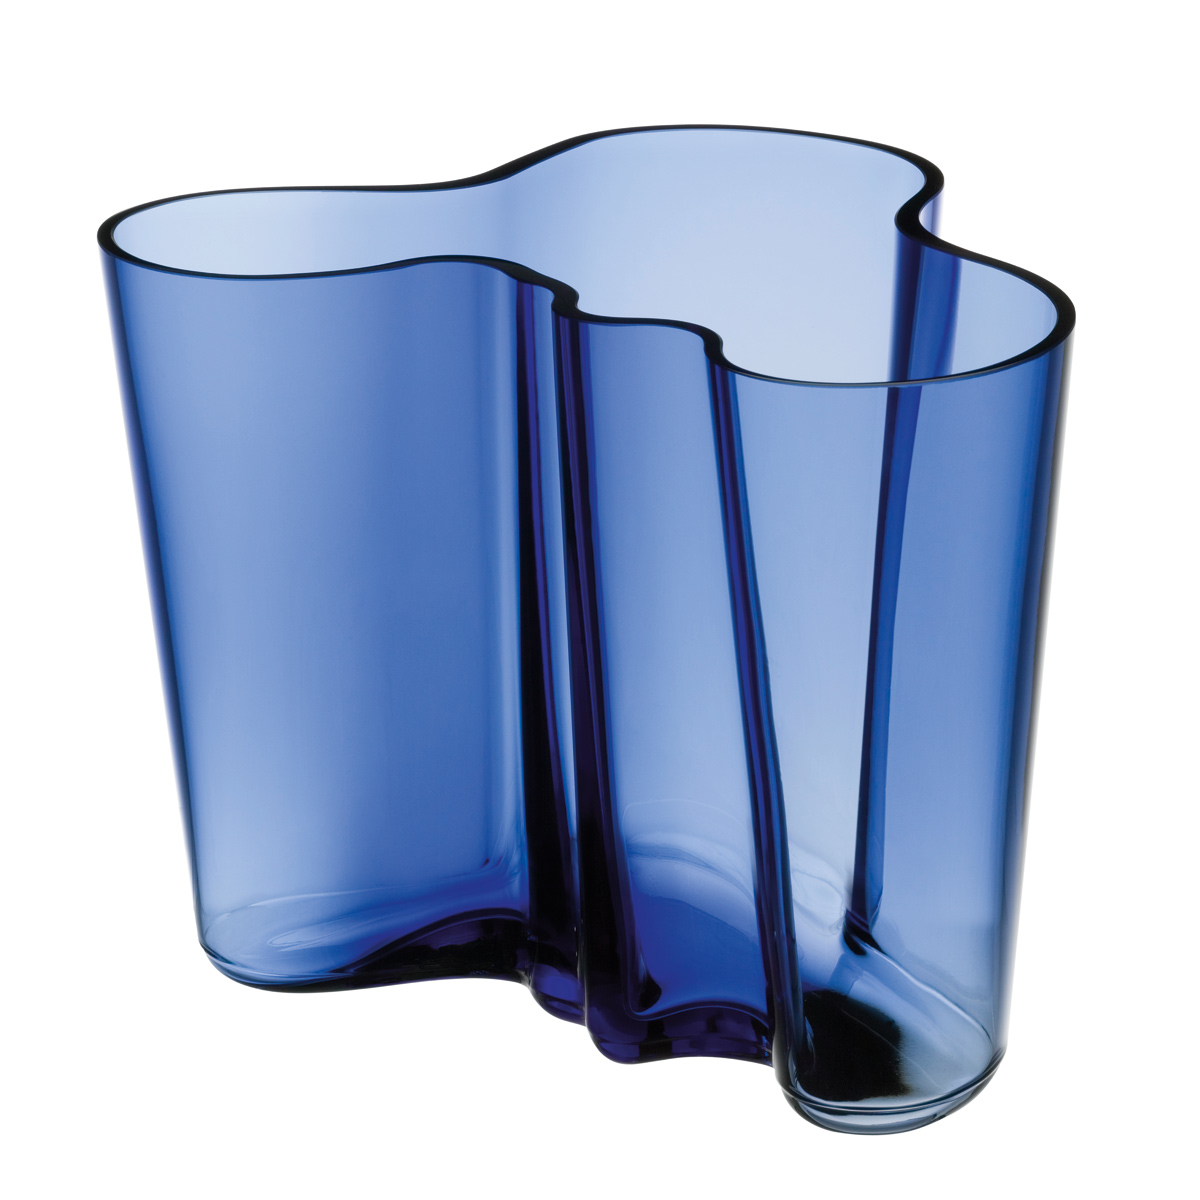 iittala aalto ultramarine 39 finland 100 39 vase 6 1 4. Black Bedroom Furniture Sets. Home Design Ideas